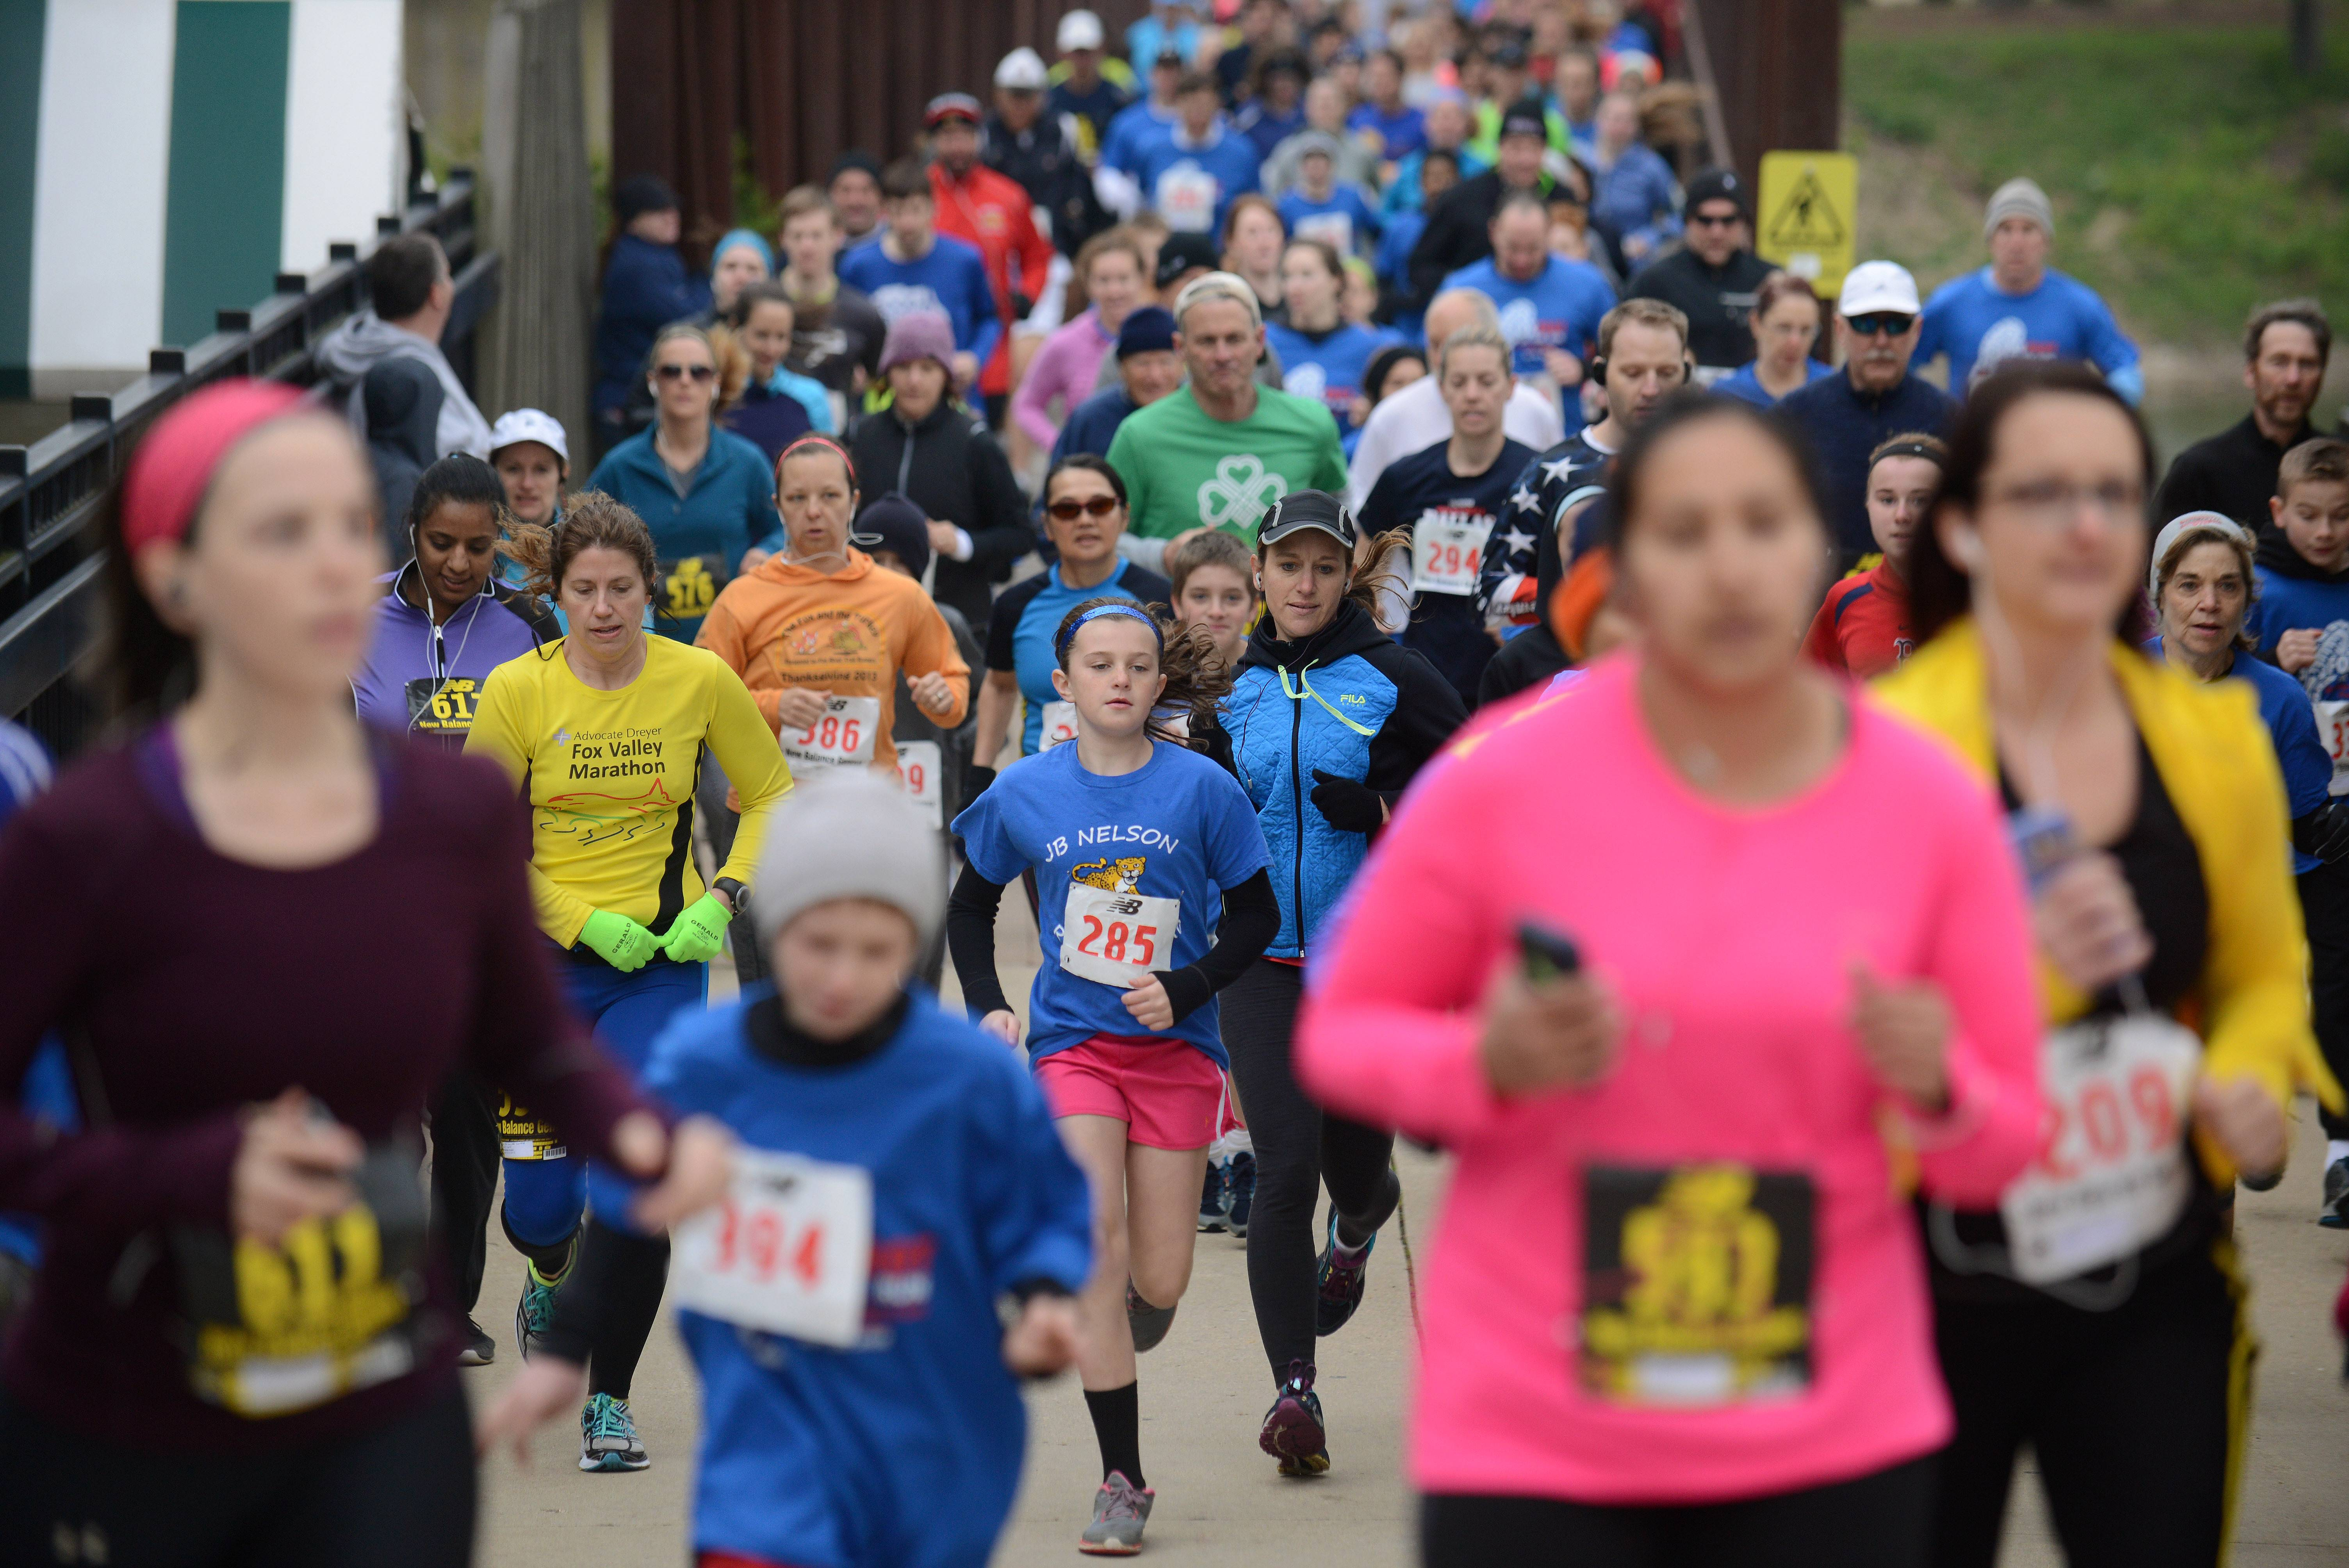 Laura Stoecker/lstoecker@dailyherald.com The Batavia Mothers' Club Foundation's 16th annual Fox Trot 5K and 10K races in Batavia Saturday attracted more than 325 runners of all ages.